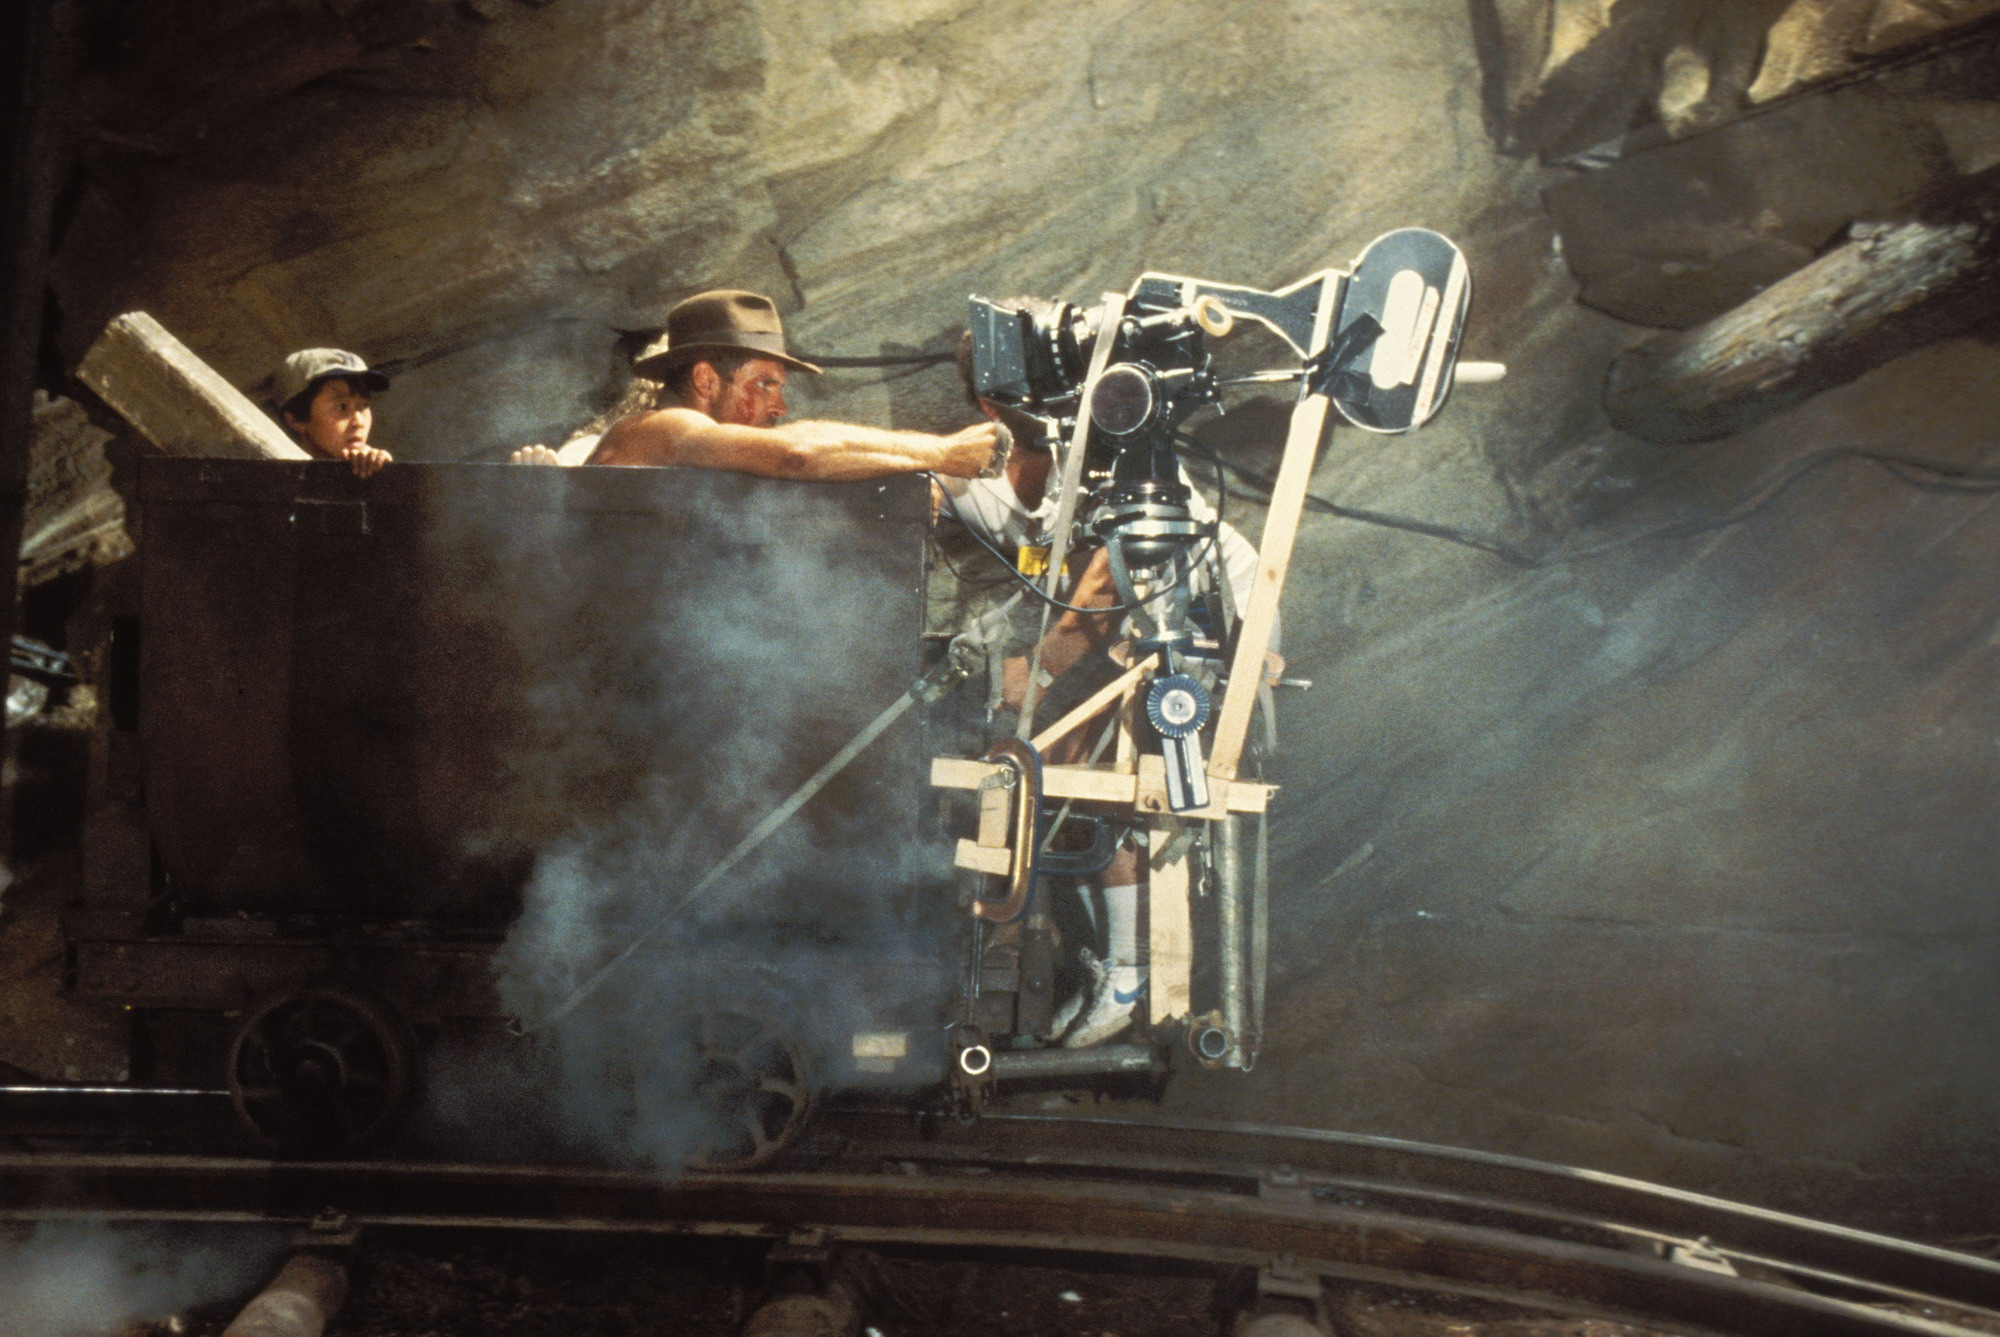 photo tournage coulisse cinema IndianaJones 25 Photos sur des tournages de films #2  photo featured cinema 2 bonus